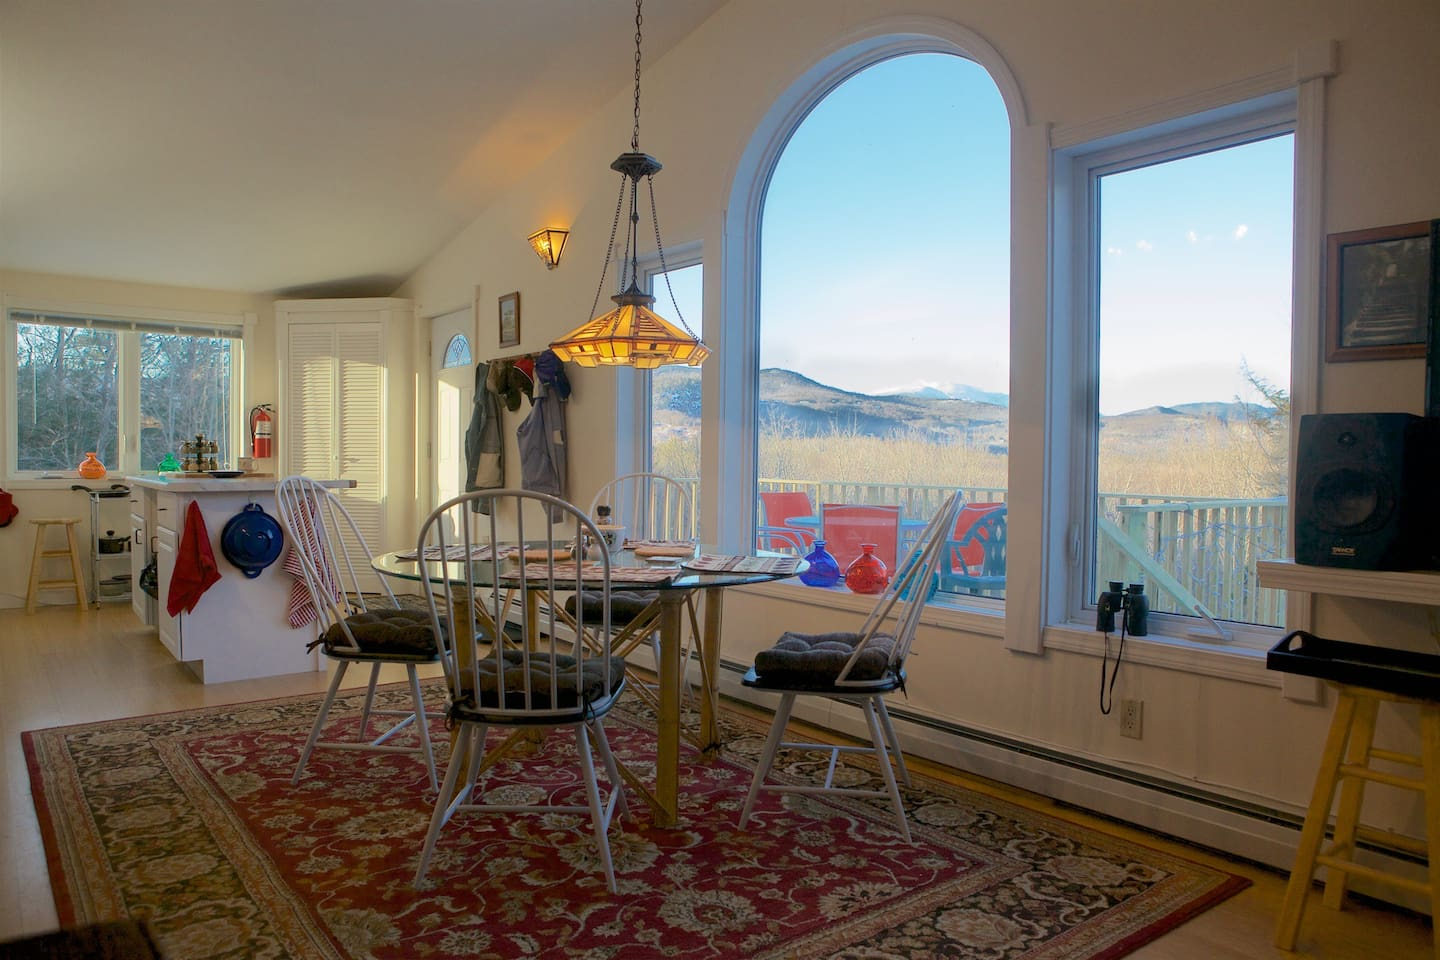 Dining indoor or out on the deck with view of Mt Washington and Gas BBQ on the Deck